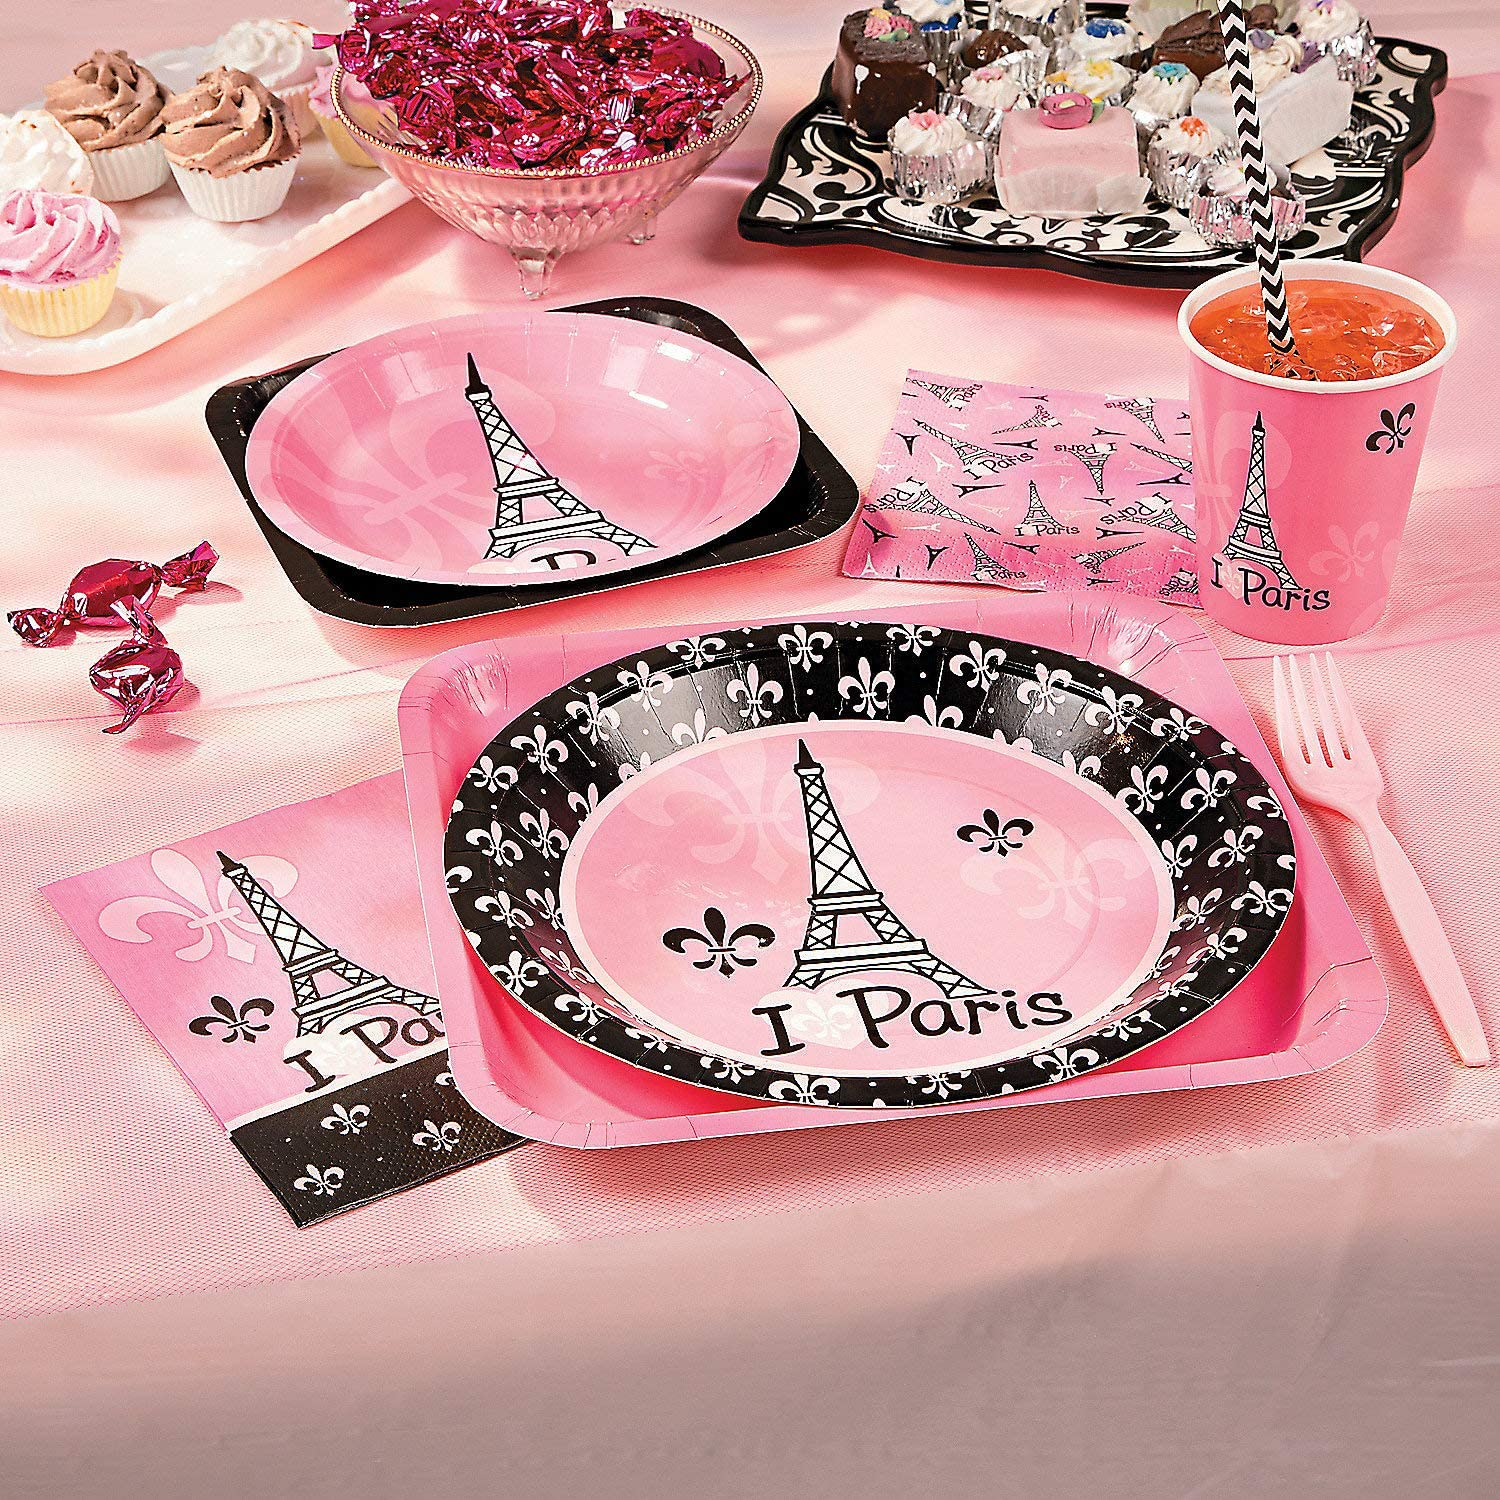 Perfectly Pink Paris Party Kit for 8 Guests (57 piece set) Plates, Cups, Napkins and Tablecloth